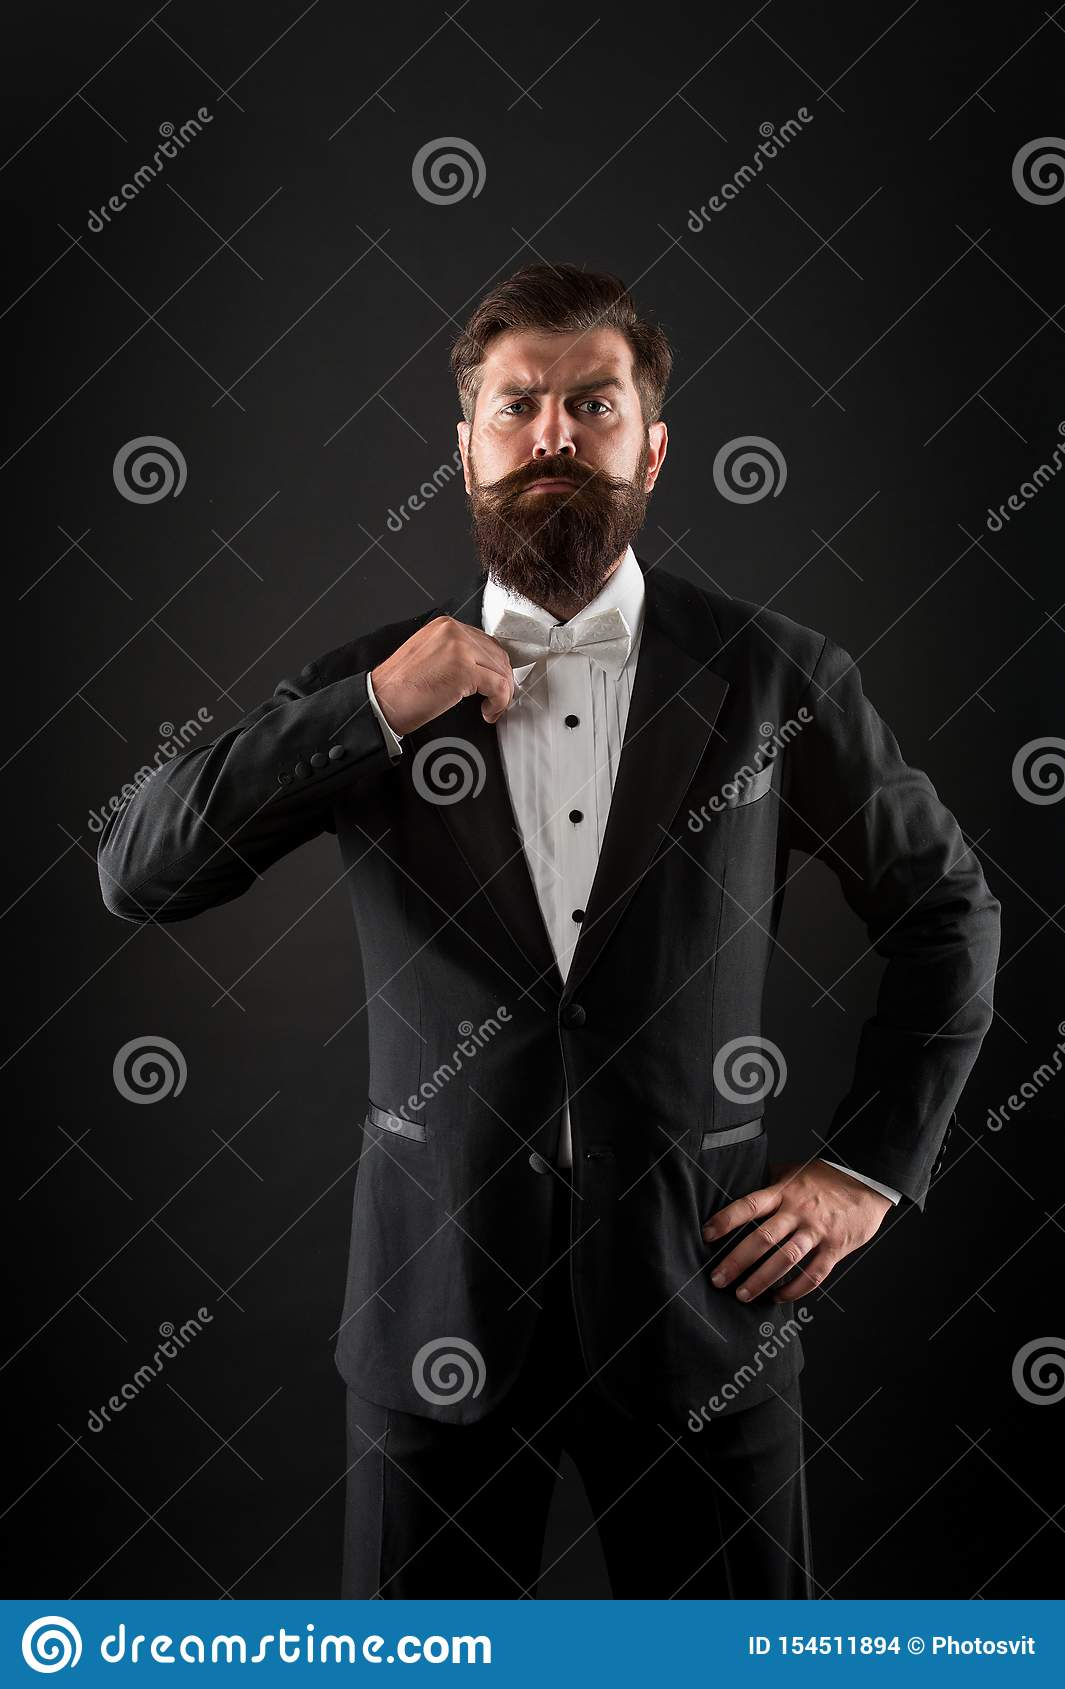 Hipster Formal Suit Tuxedo Difference Between Vintage And Classic